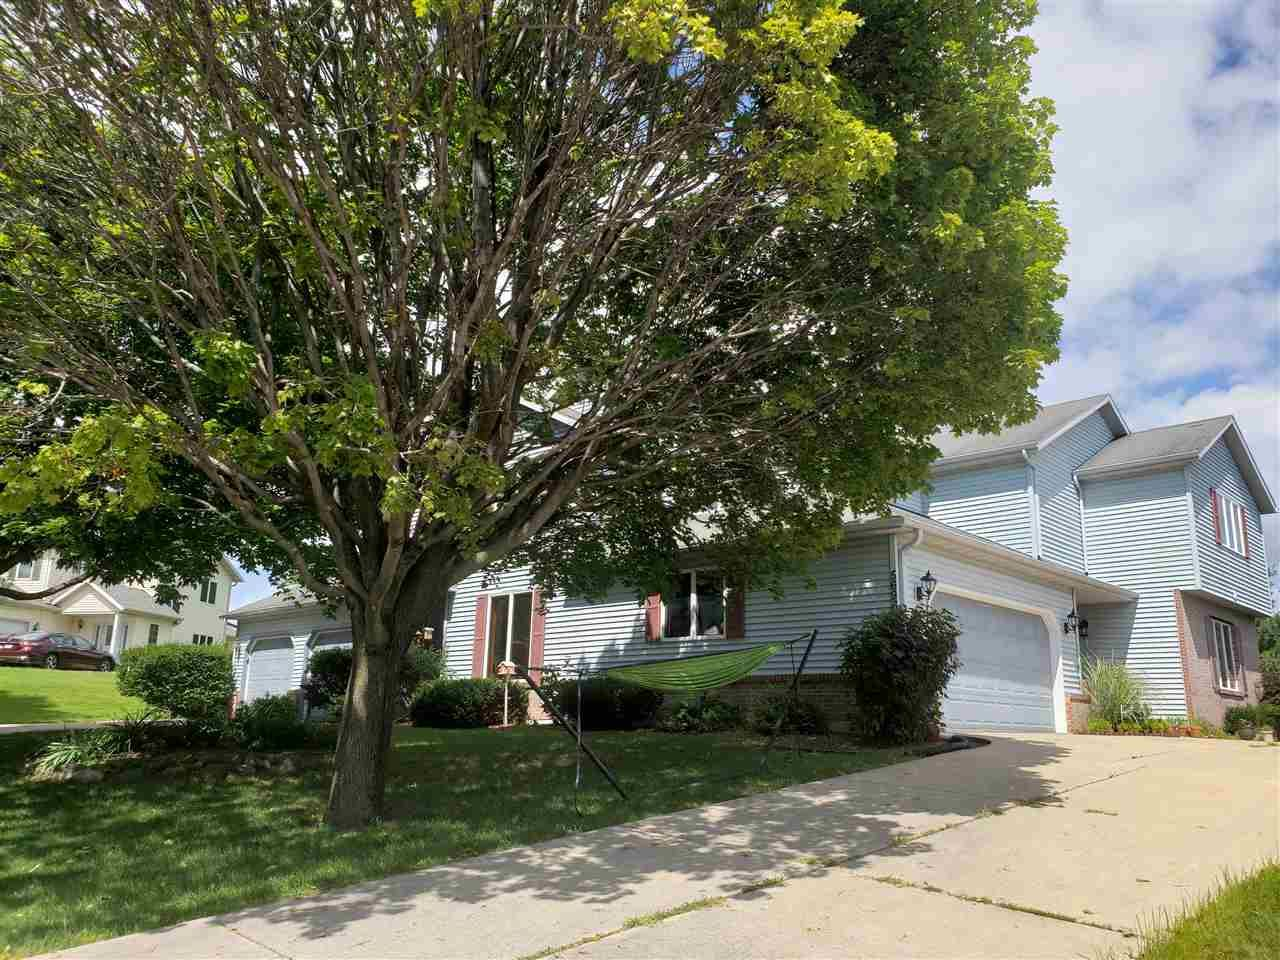 5696\/5698 Claredon Dr, Fitchburg, WI 53711 - MLS#: 1889217